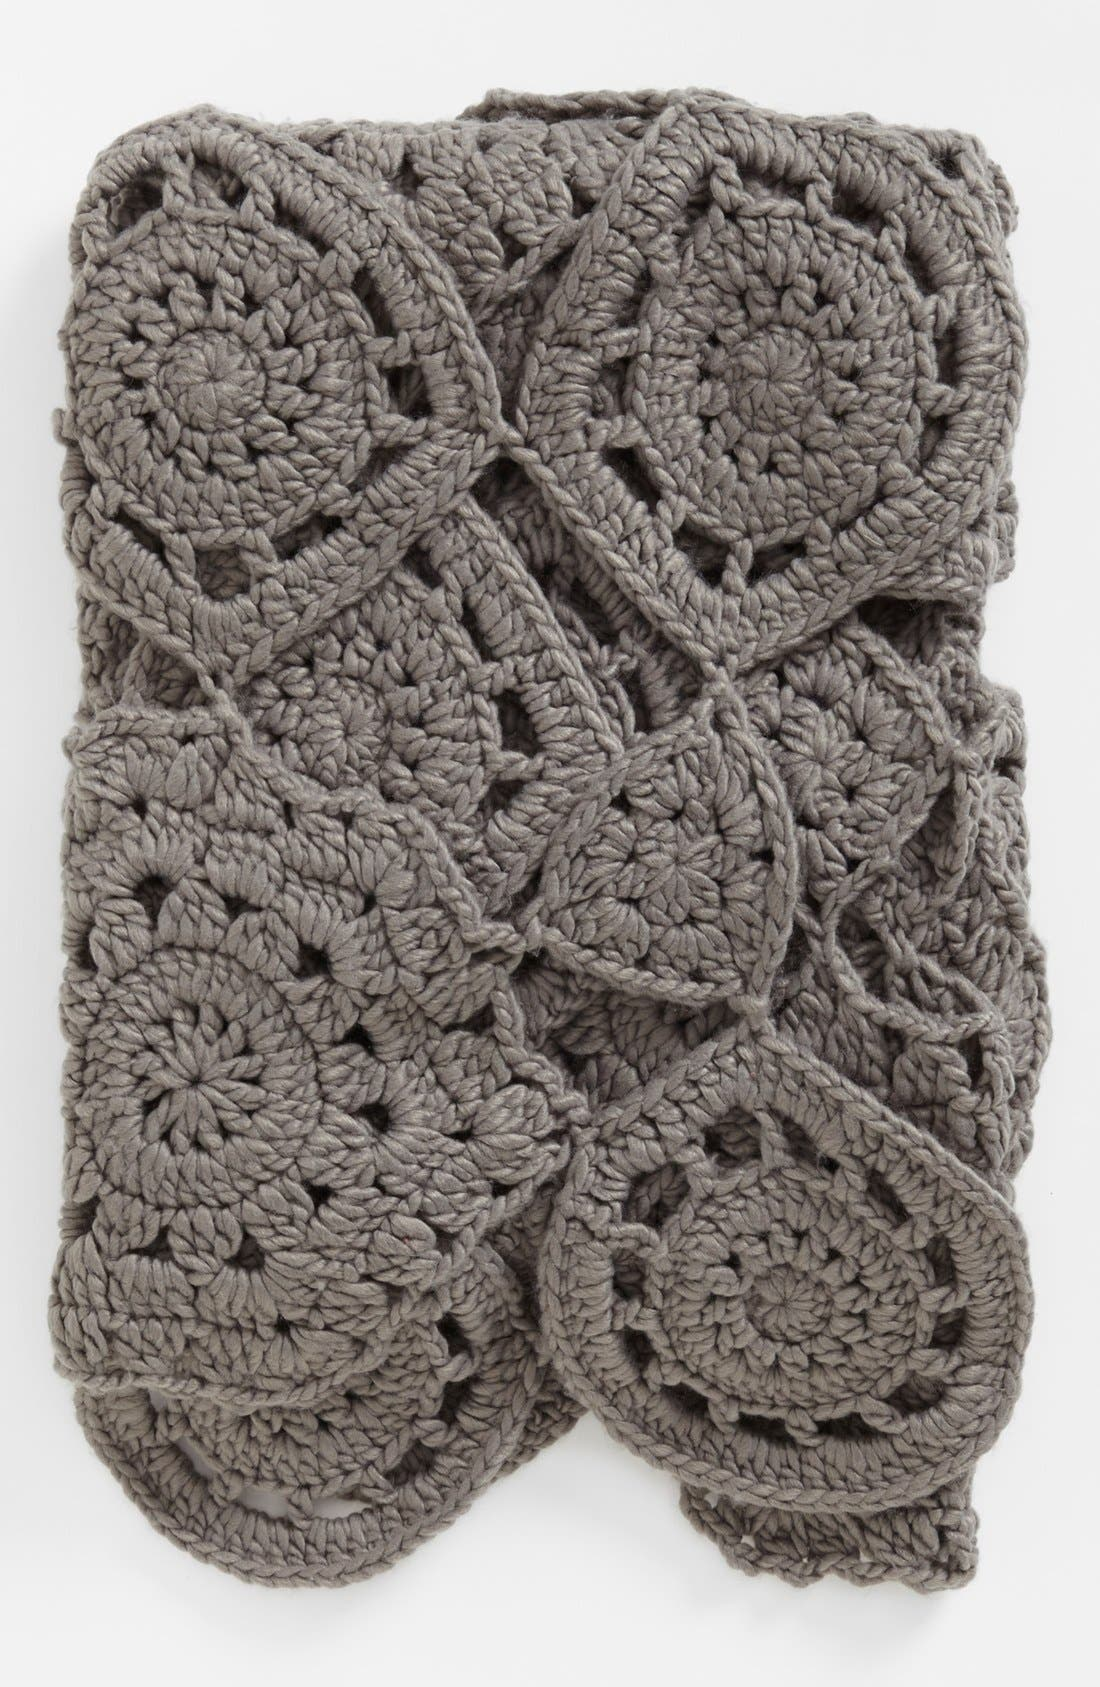 Alternate Image 1 Selected - Nordstrom at Home 'Astor' Hand Crocheted Throw